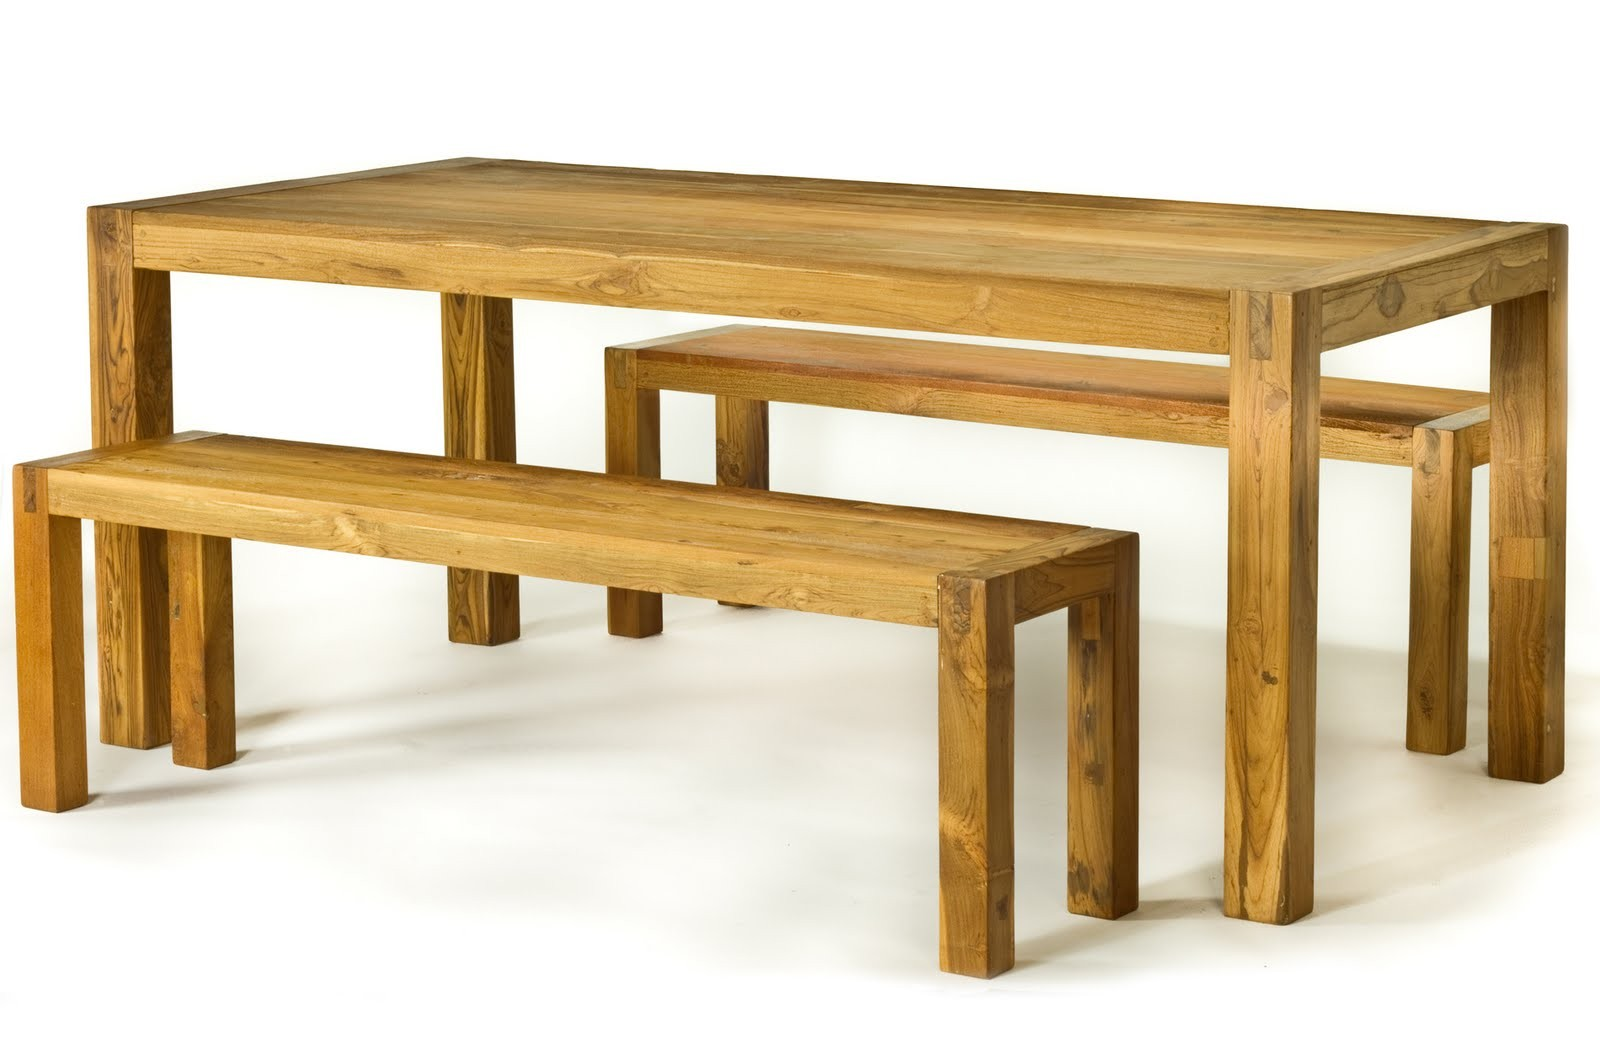 Baby green reclaimed wood dining tables - Wood kitchen table plans ...